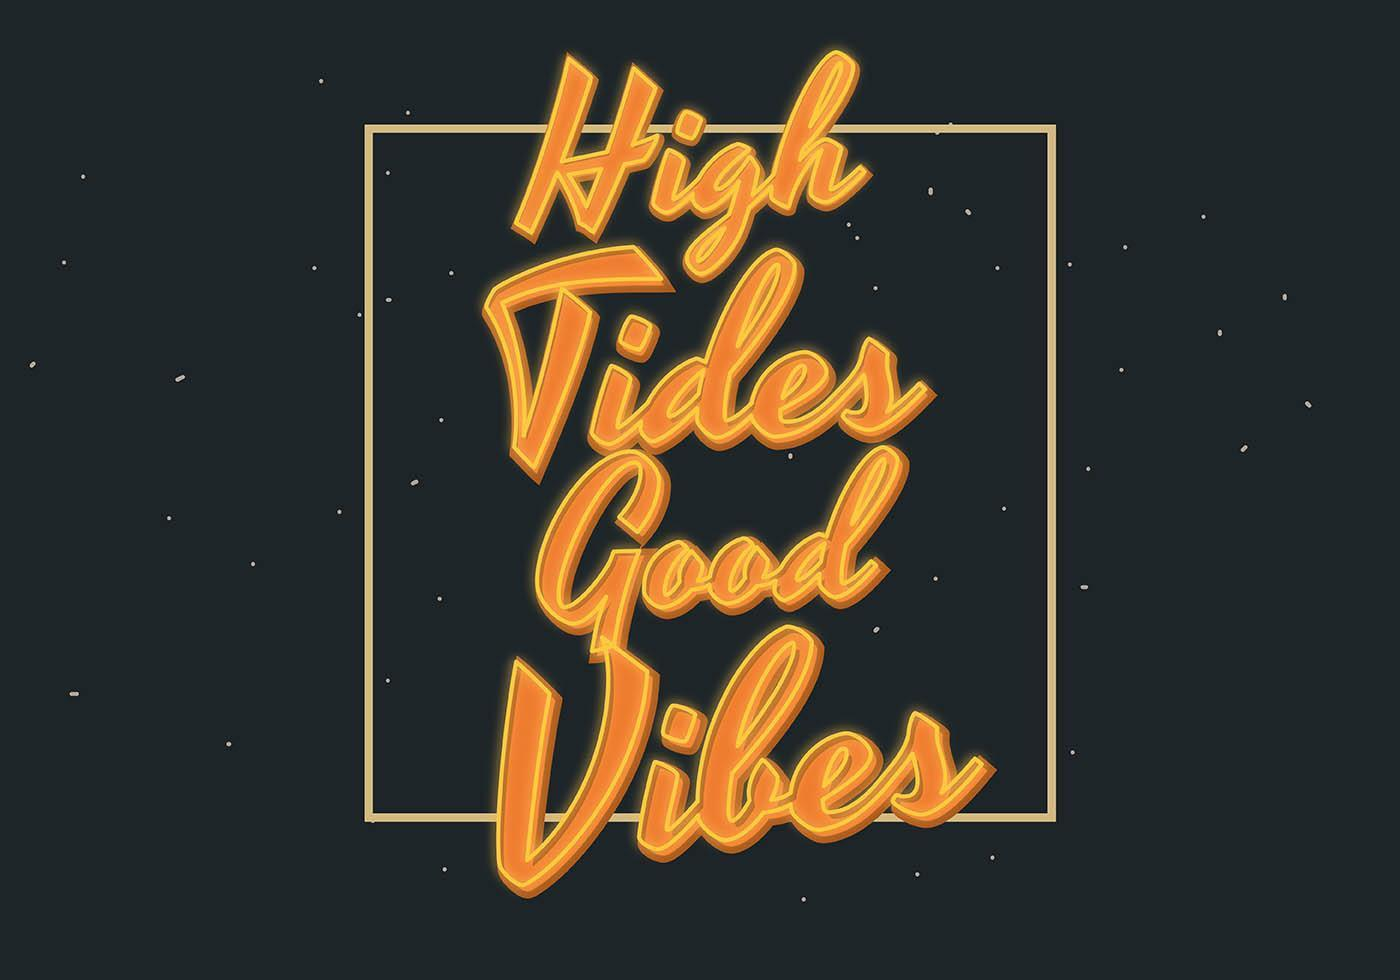 Mareas altas Good Vibes Lettering